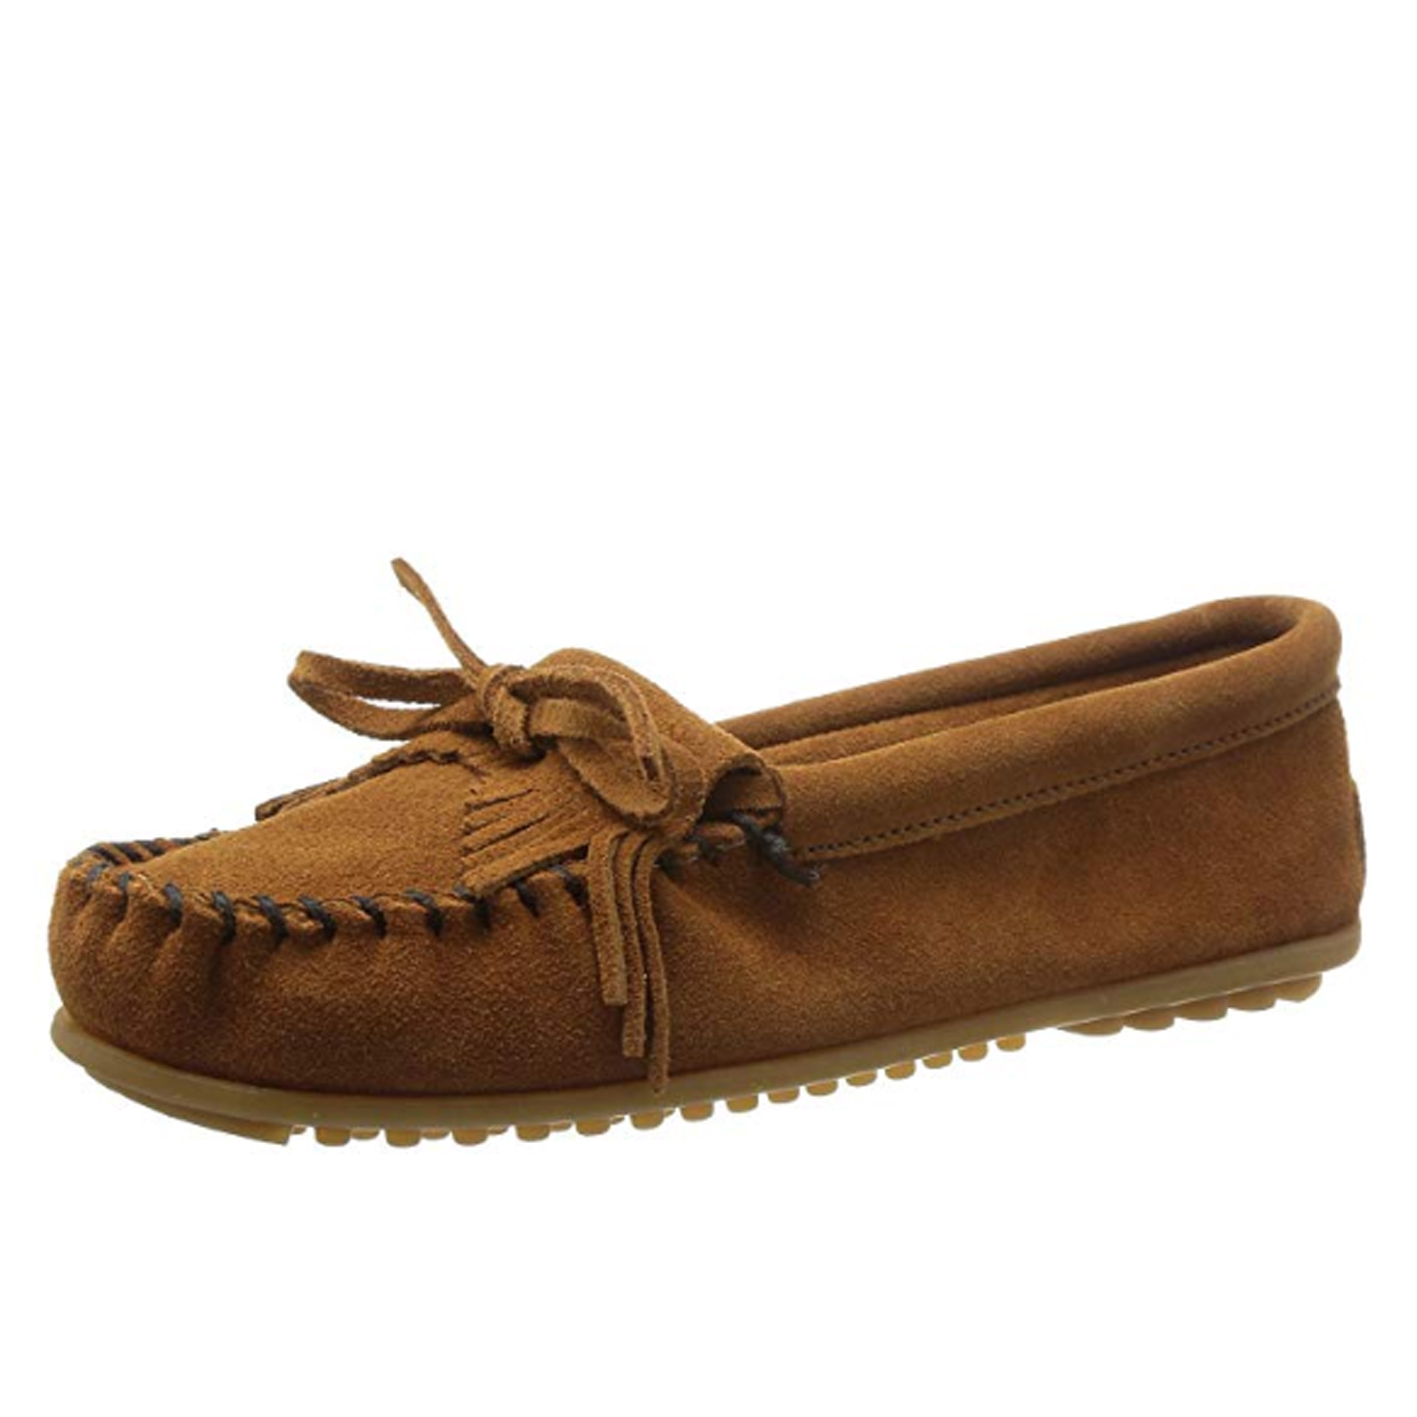 Minnetonka Women's Kilty Suede Moccasin - Minimalist shoes that look good post by Mama Natural